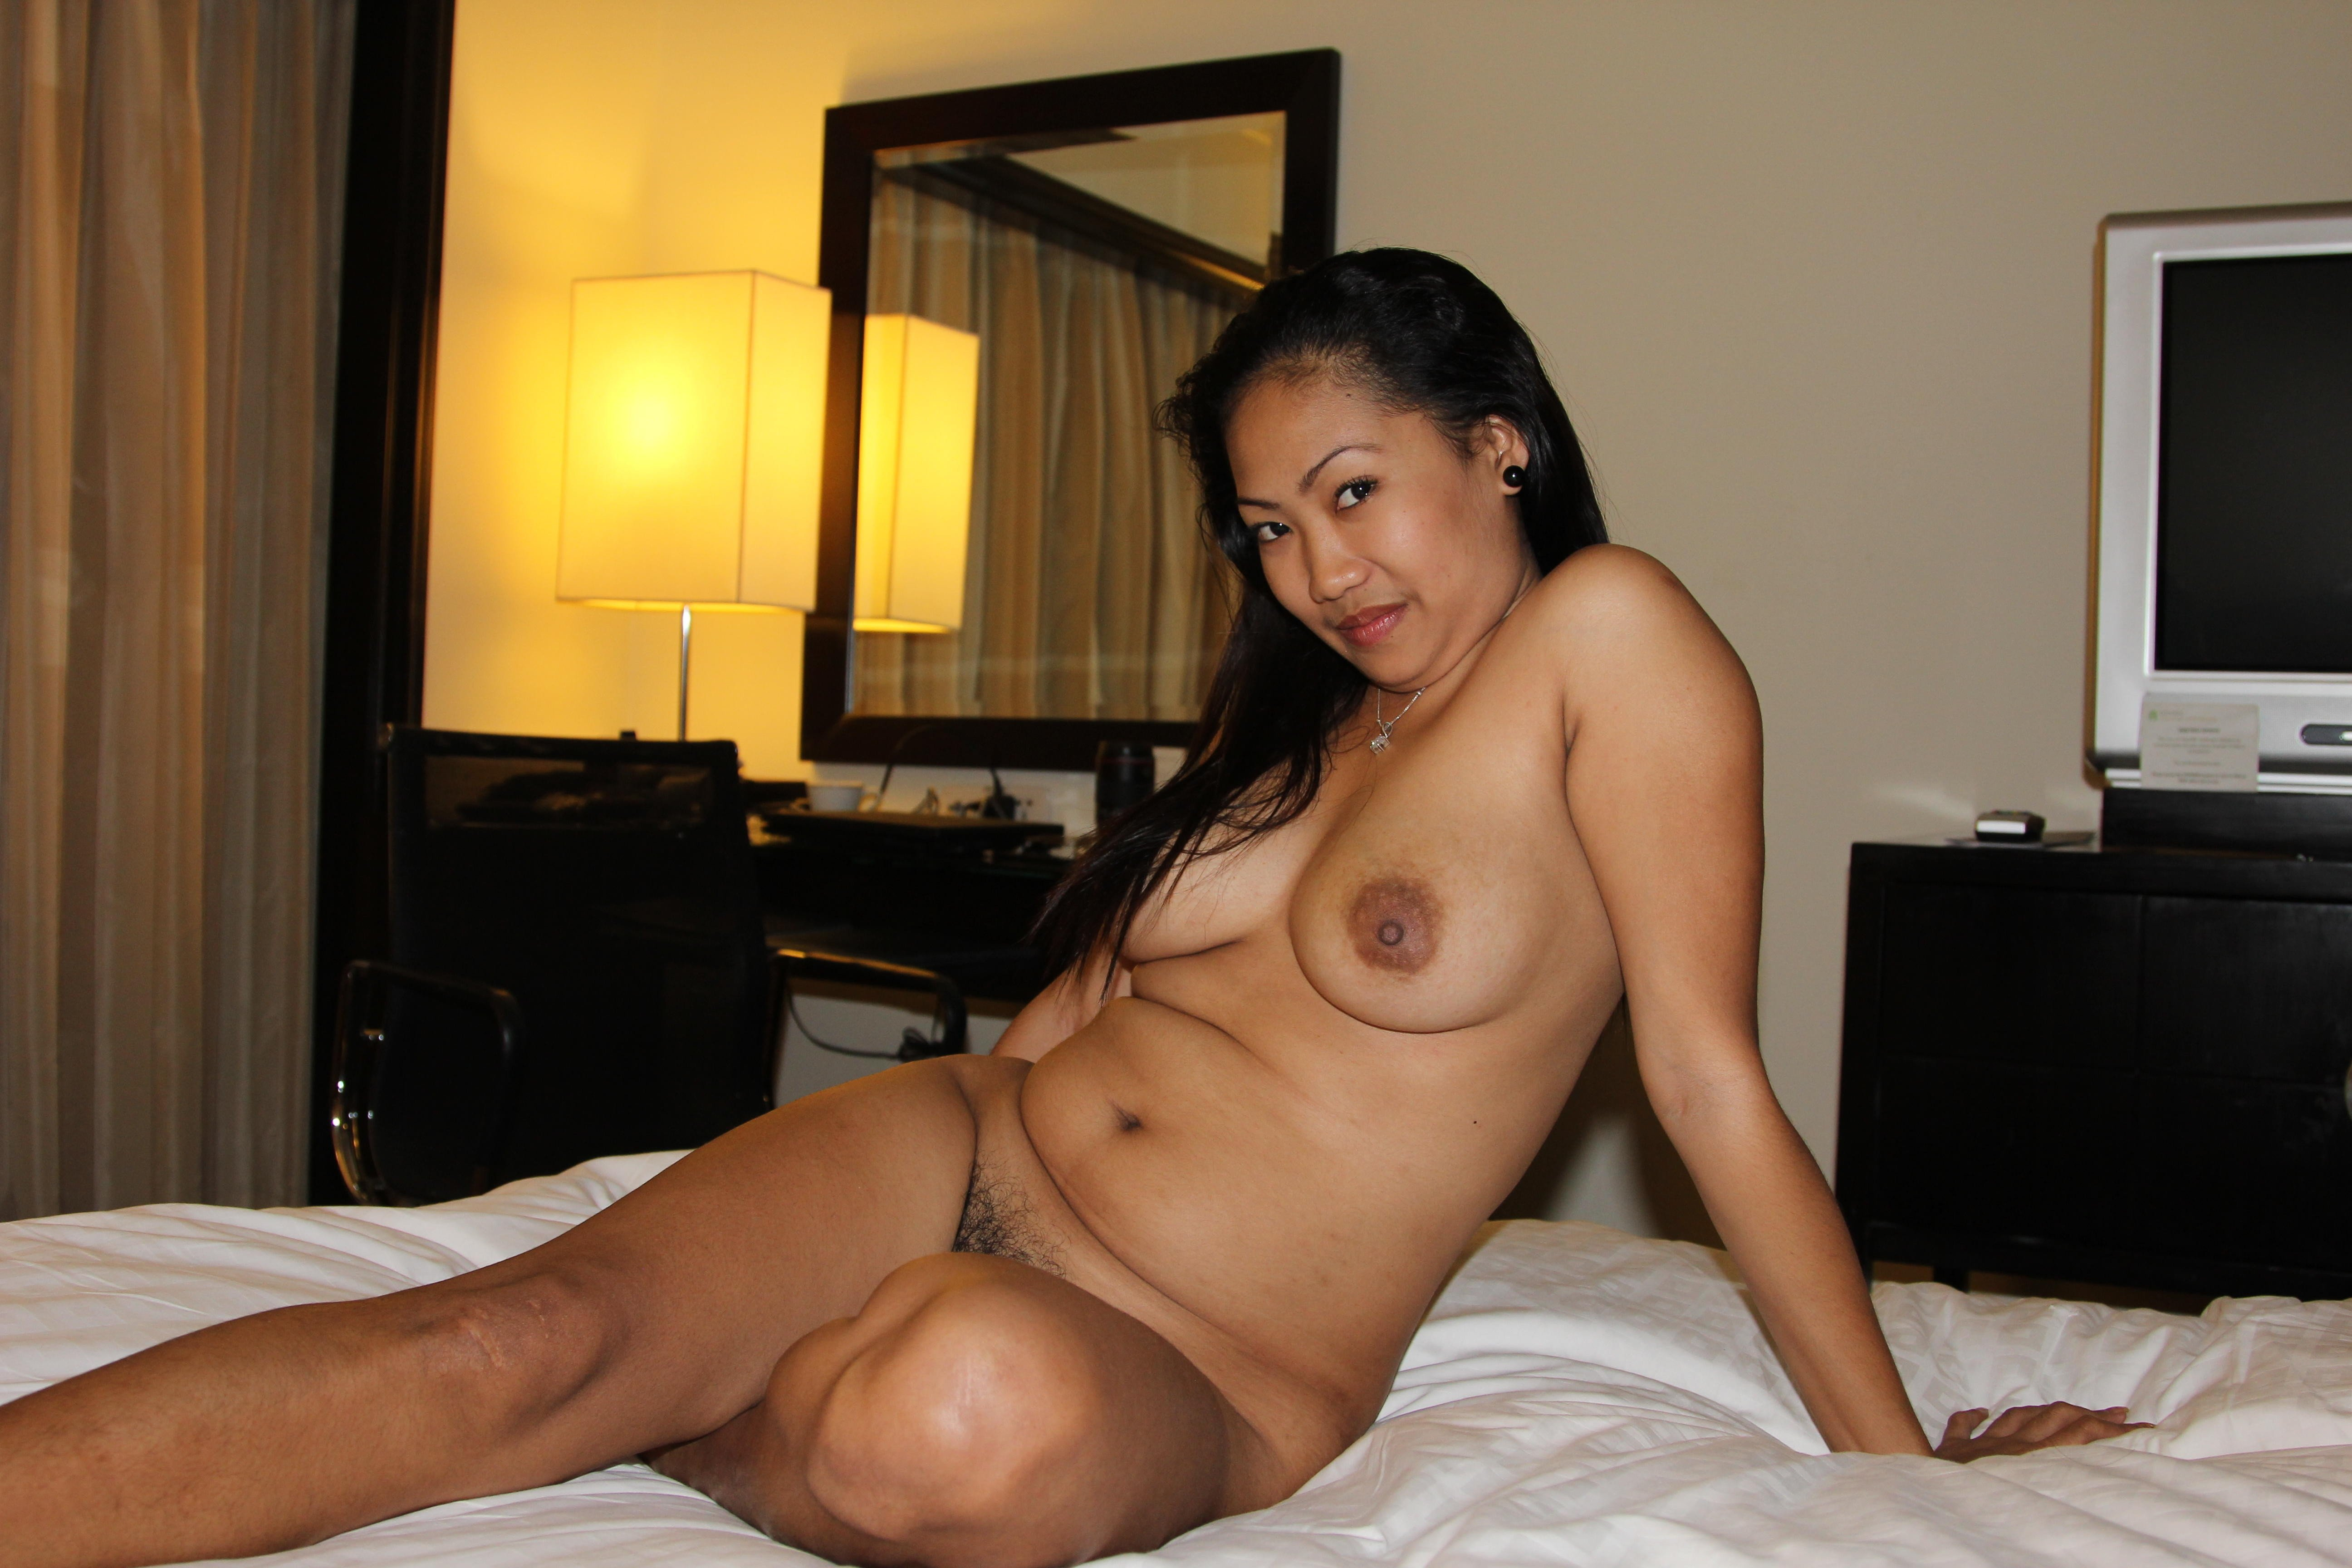 Asian Amateur Pics With Naked Asian Women